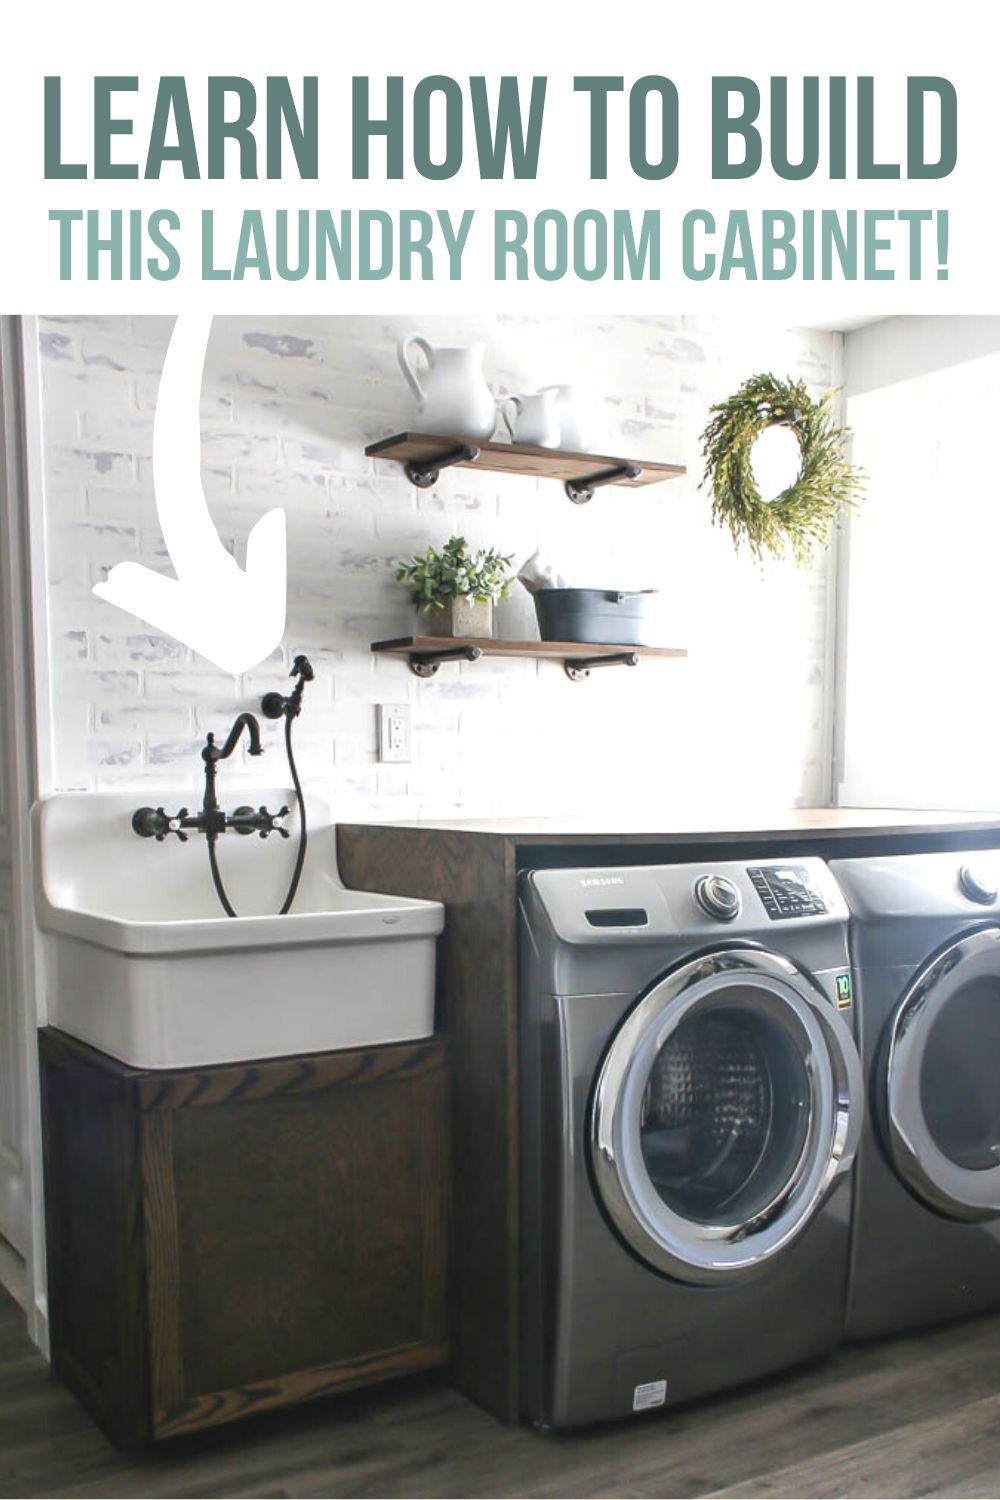 Diy Farmhouse Sink Cabinet For Laundry Room In 2020 Laundry Room